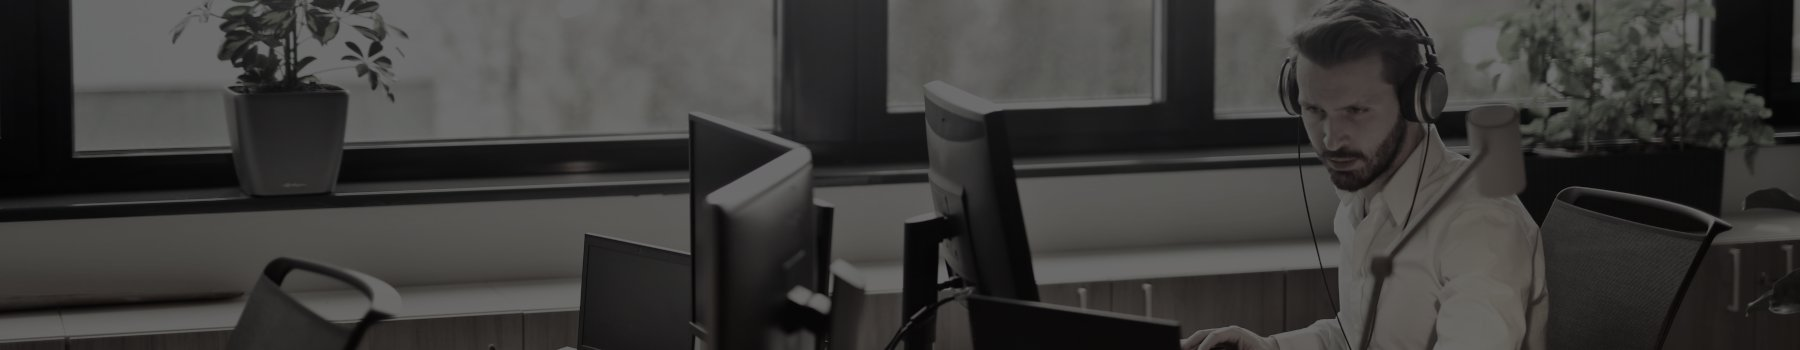 Man at a desk on the phone